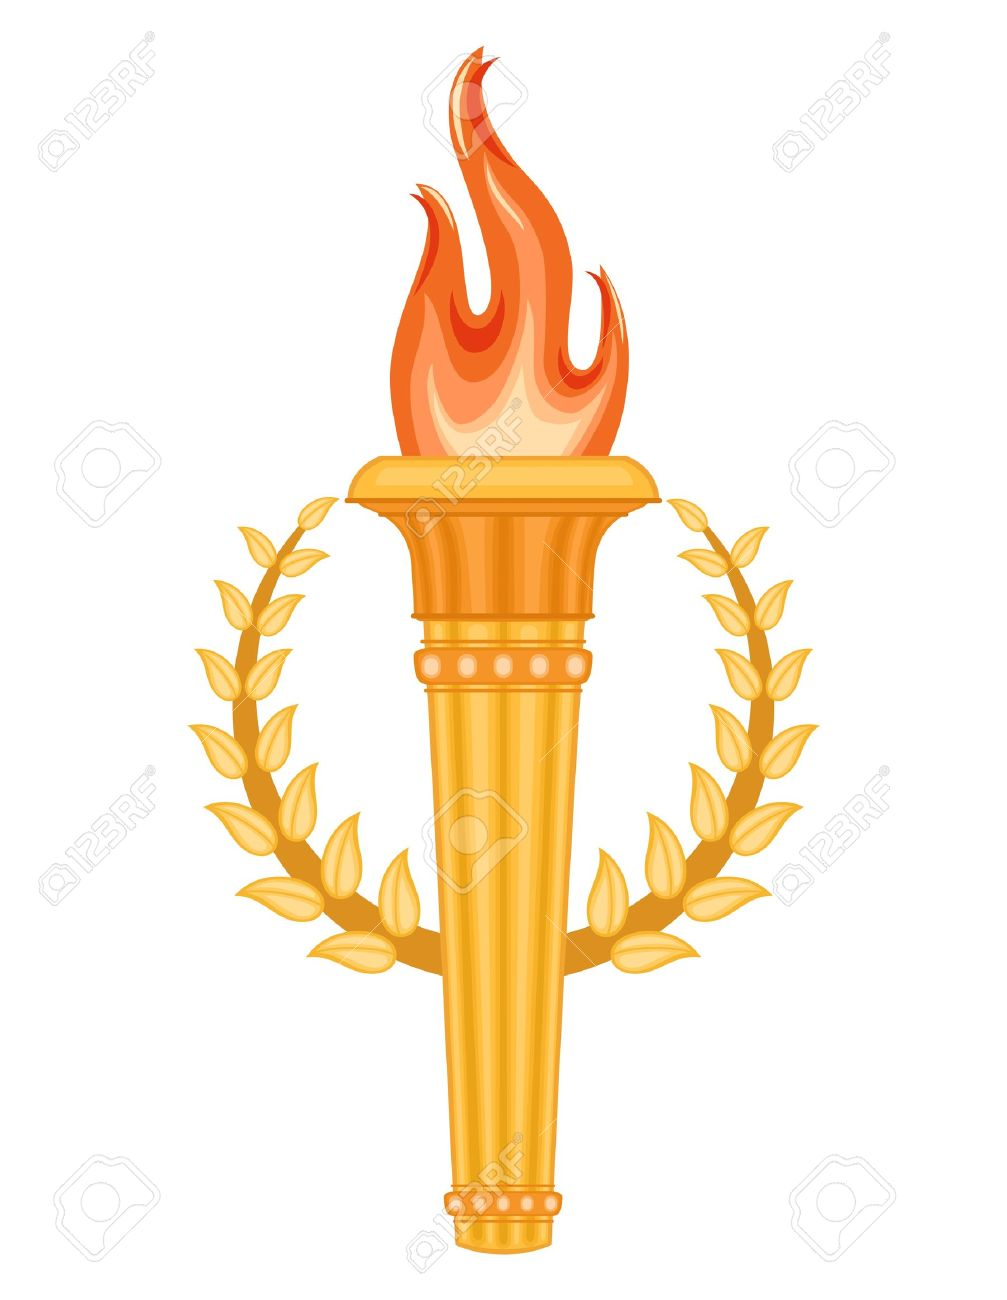 Greek sports competition Torch with golden crown of laurels. sports competitions games symbol. Isolated over white background Stock Photo - 13419027